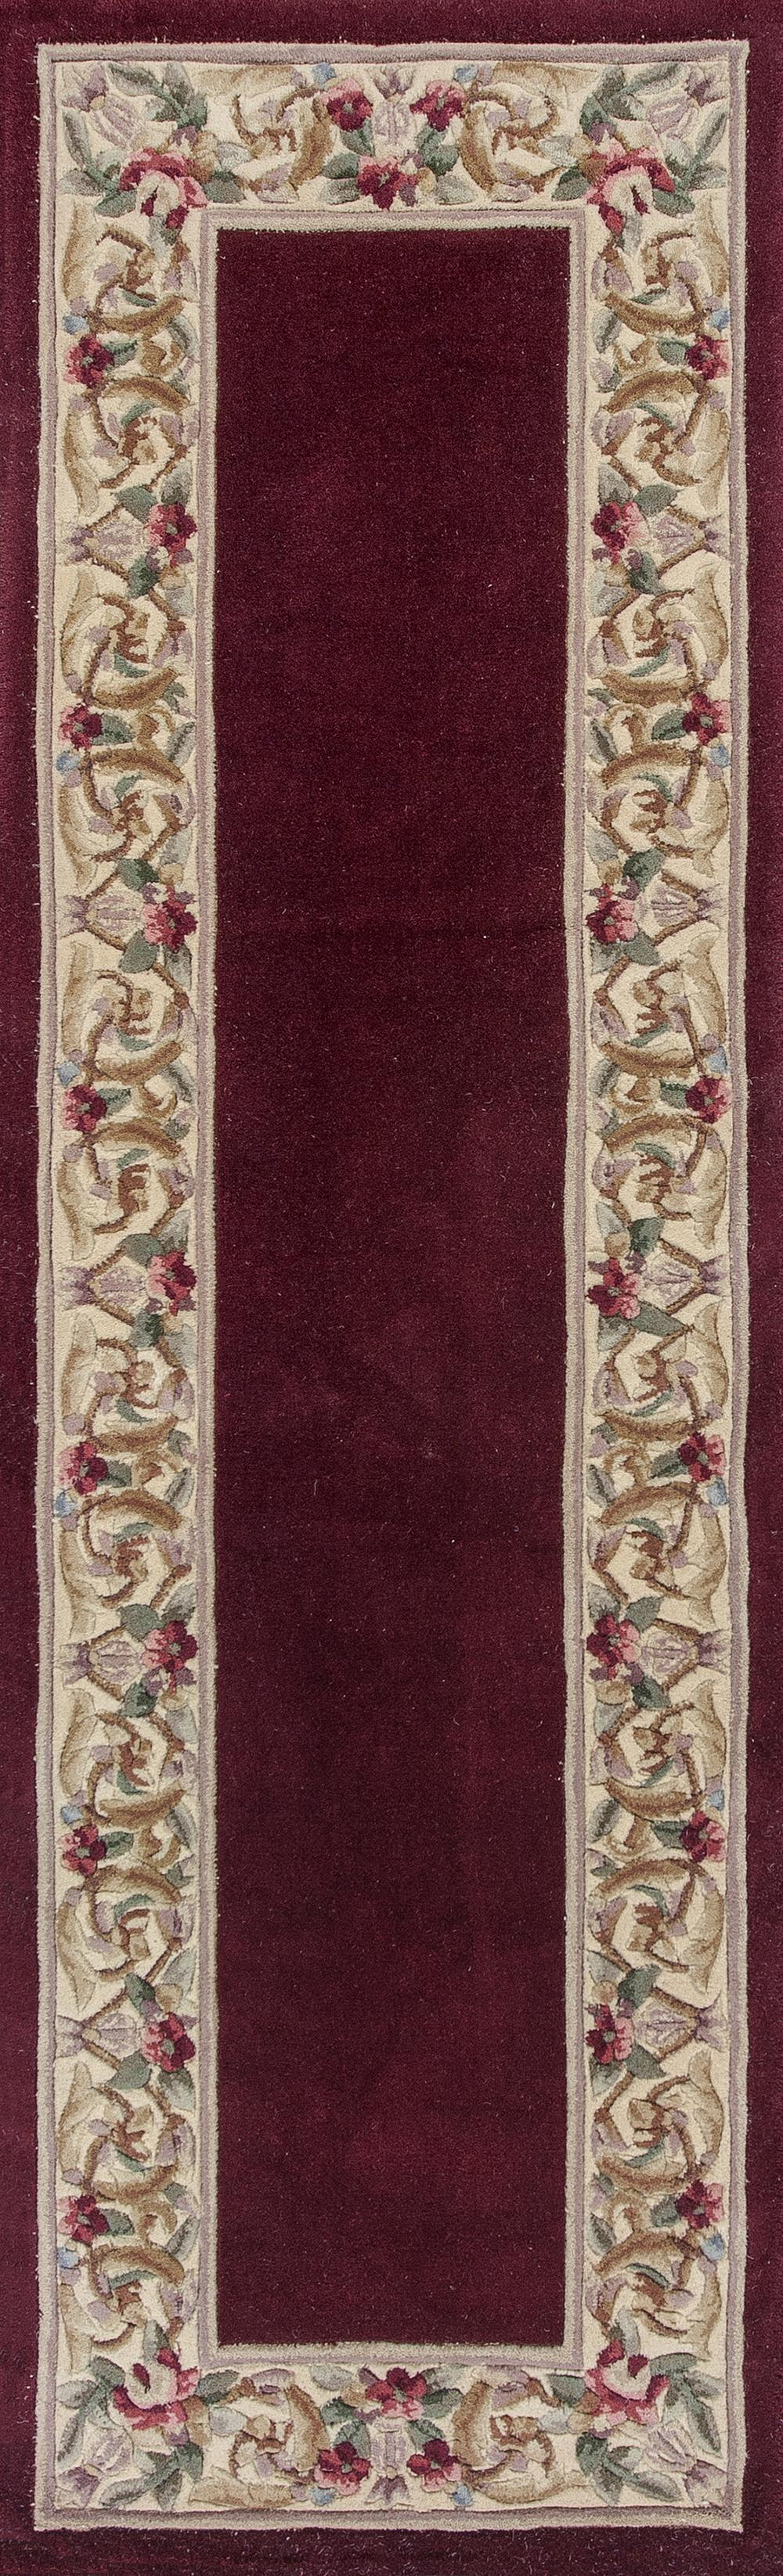 Kas Ruby 8979 Ruby Floral Border Area Rug Free Shipping